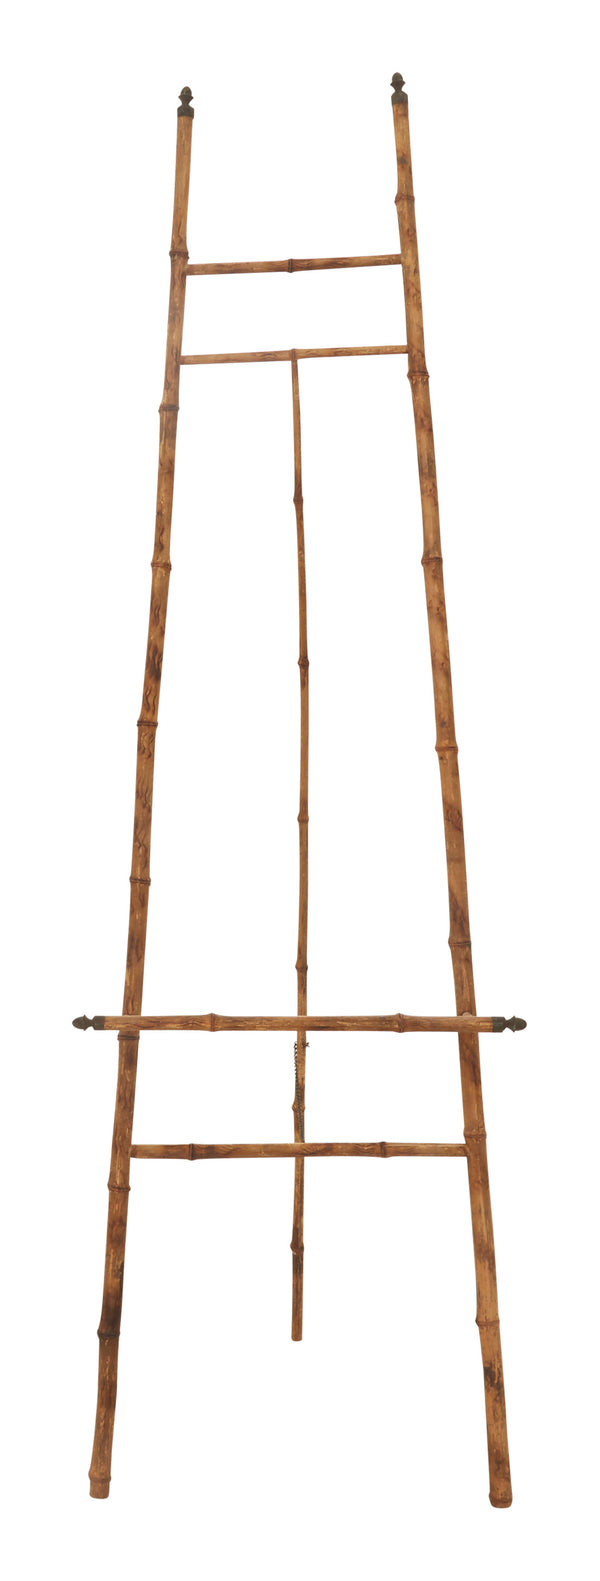 Vintage Bamboo Easel